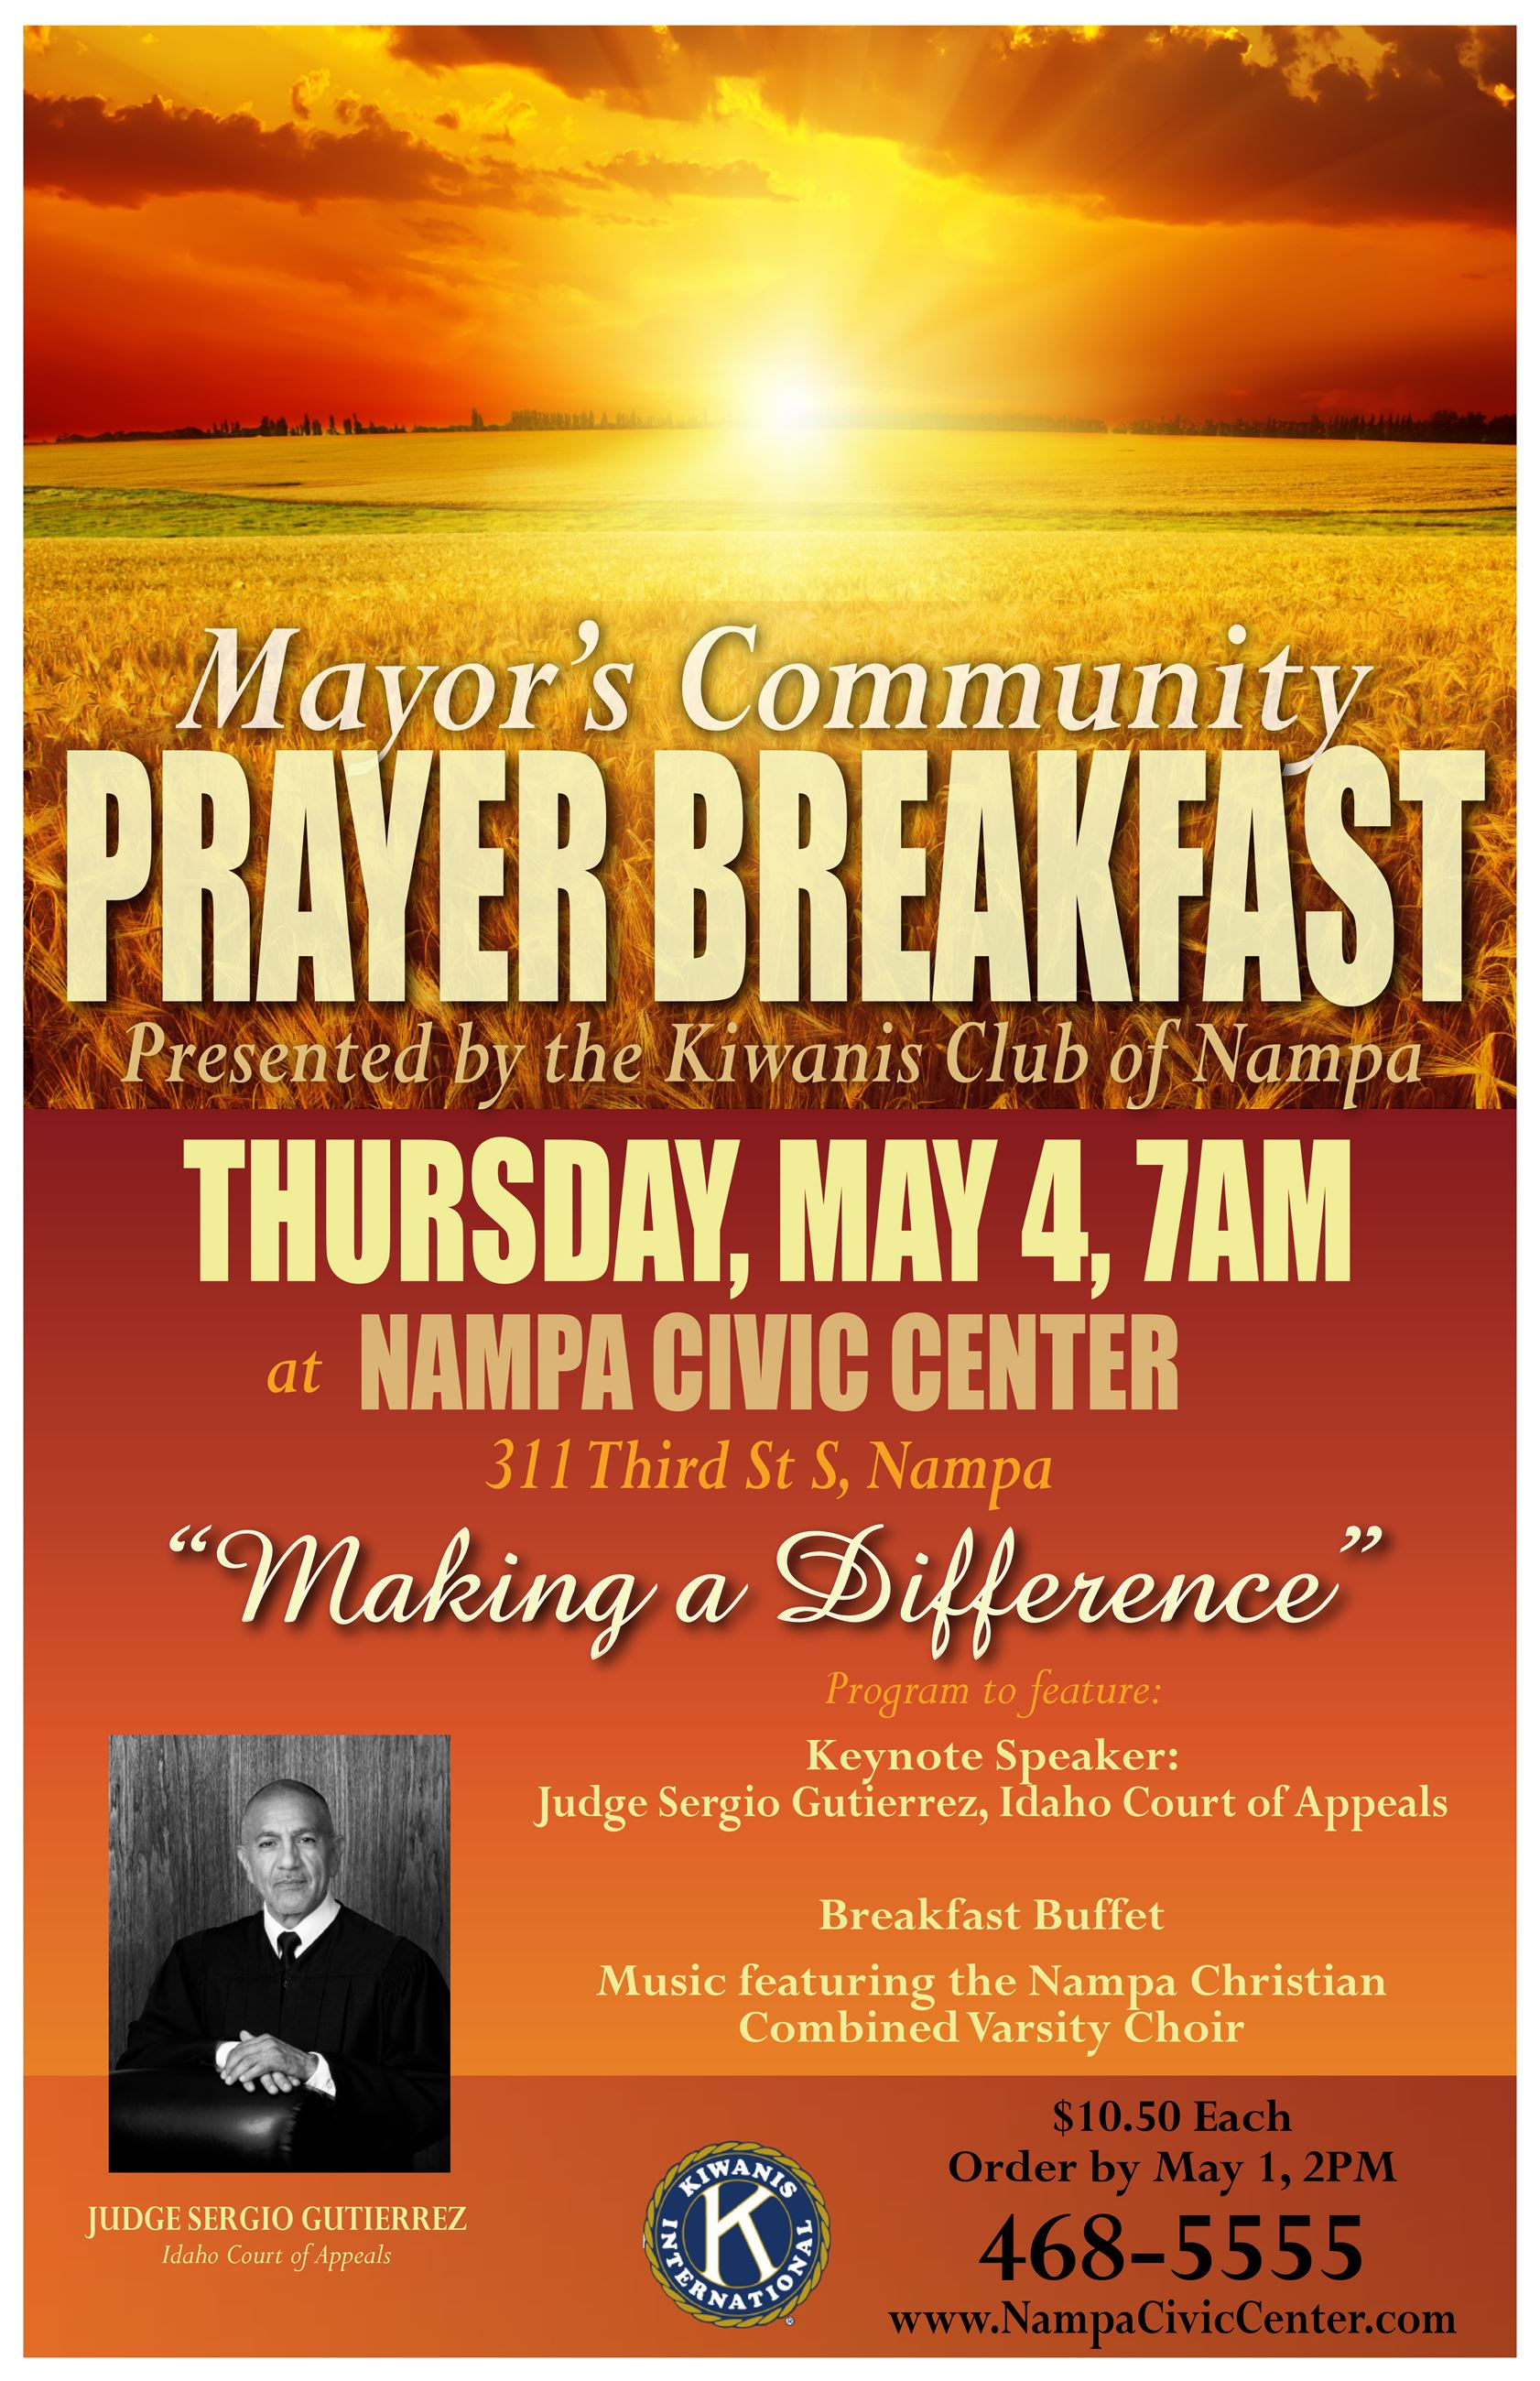 Mayor's Community Prayer Breakfast poster 2017